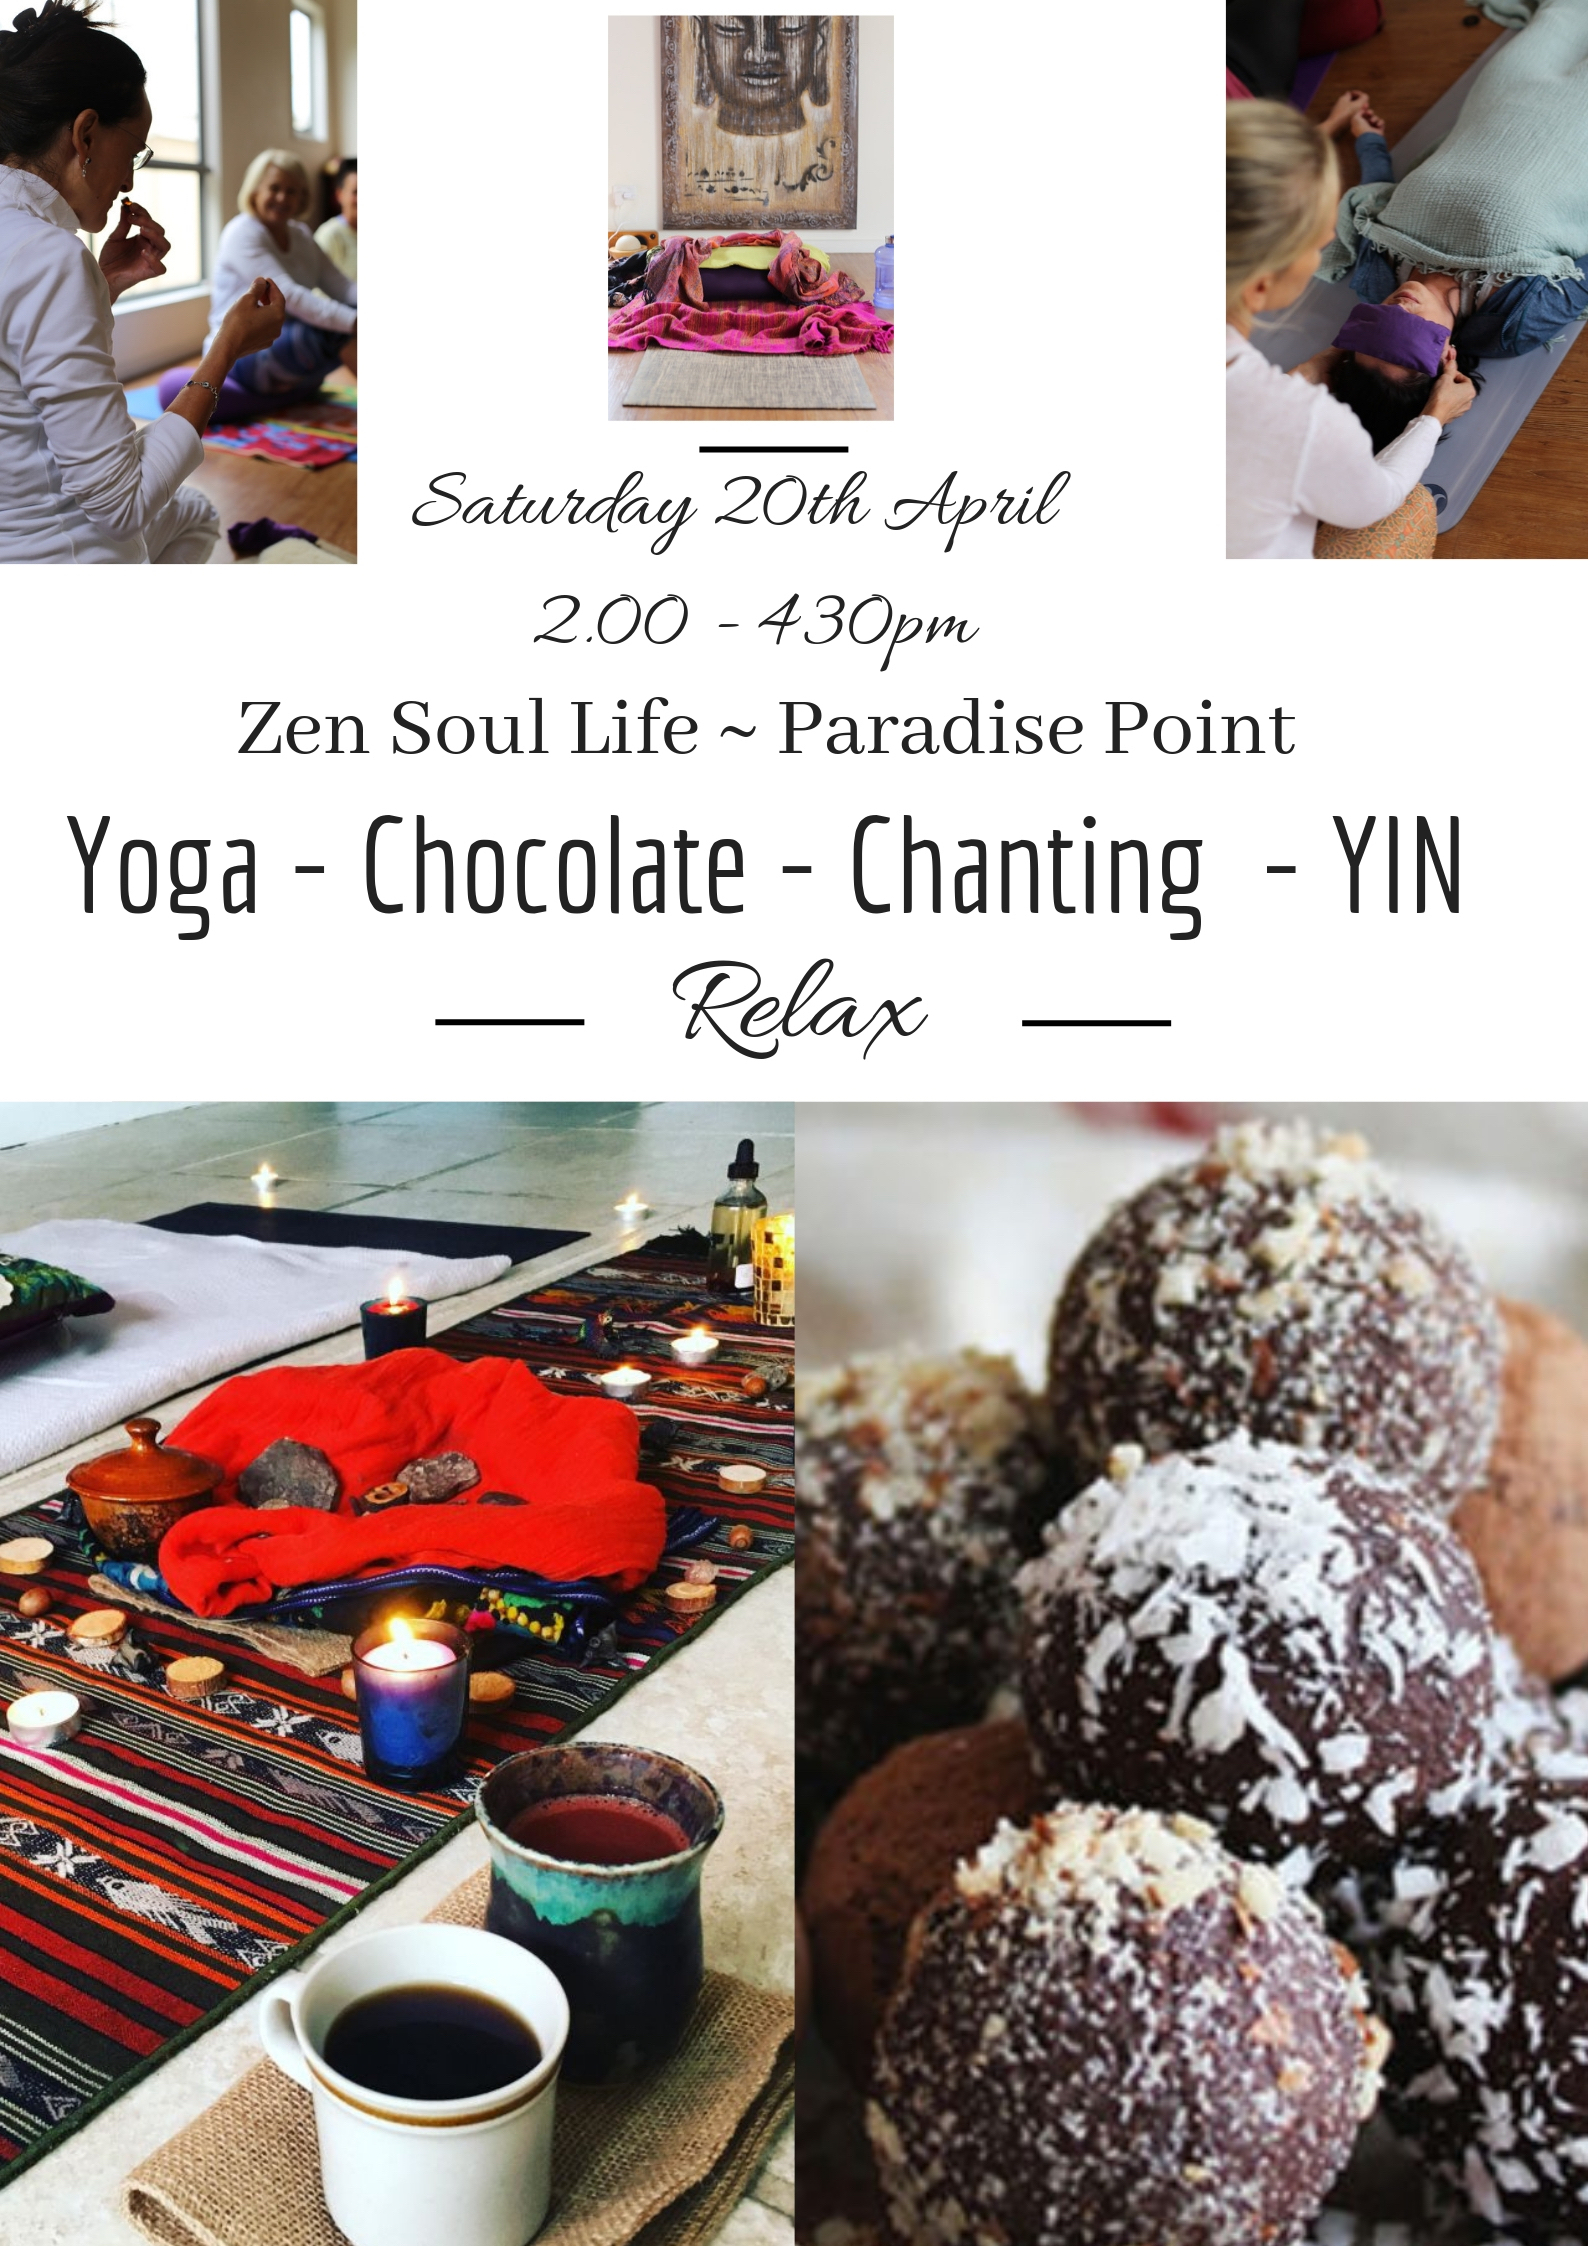 Yoga Chocolate Chanting YIN - Mini Retreat